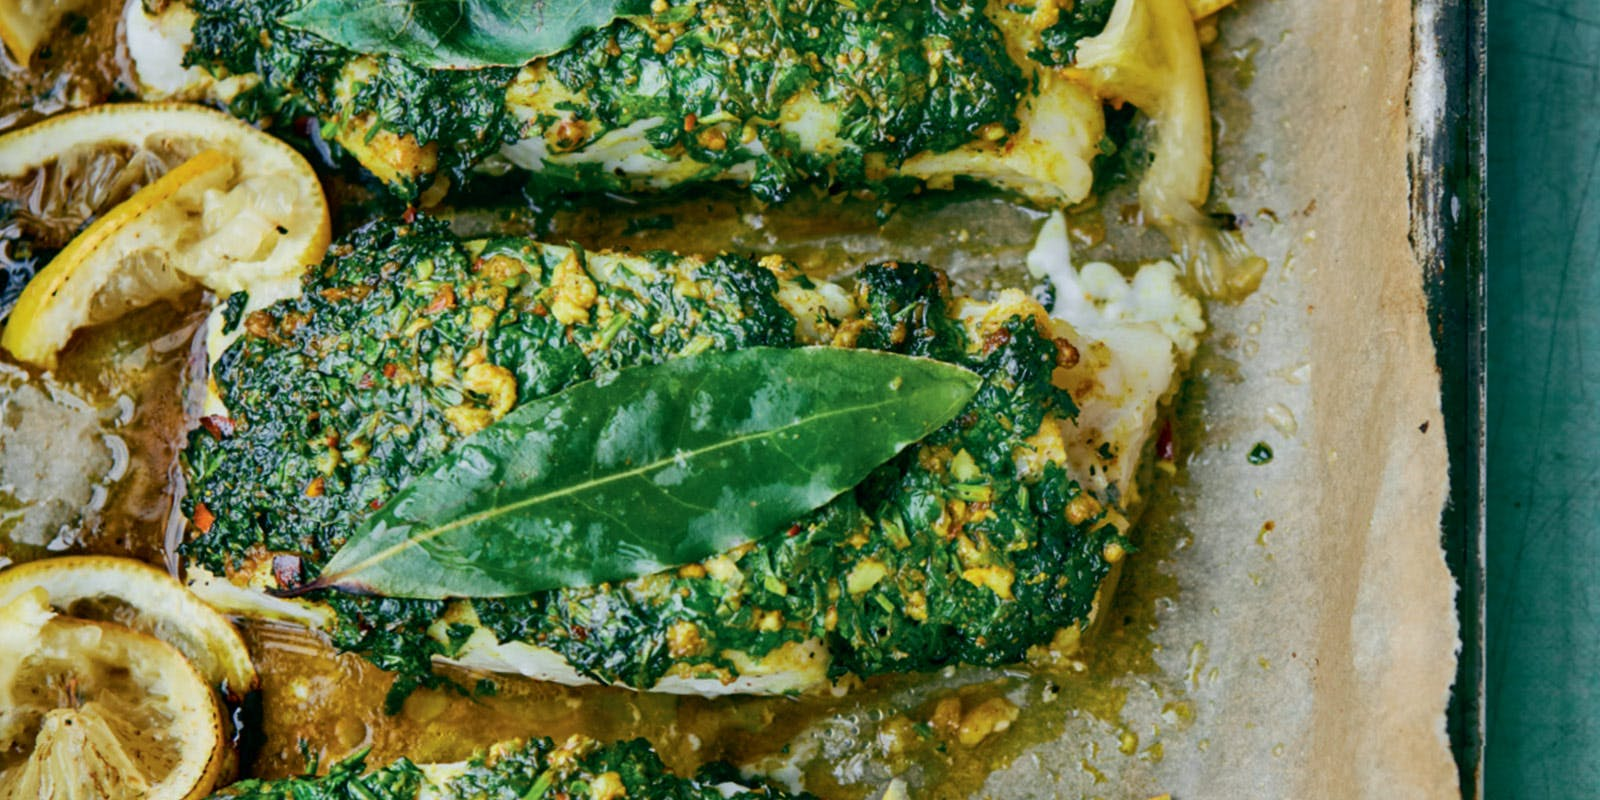 Roasted cod with a coriander crust